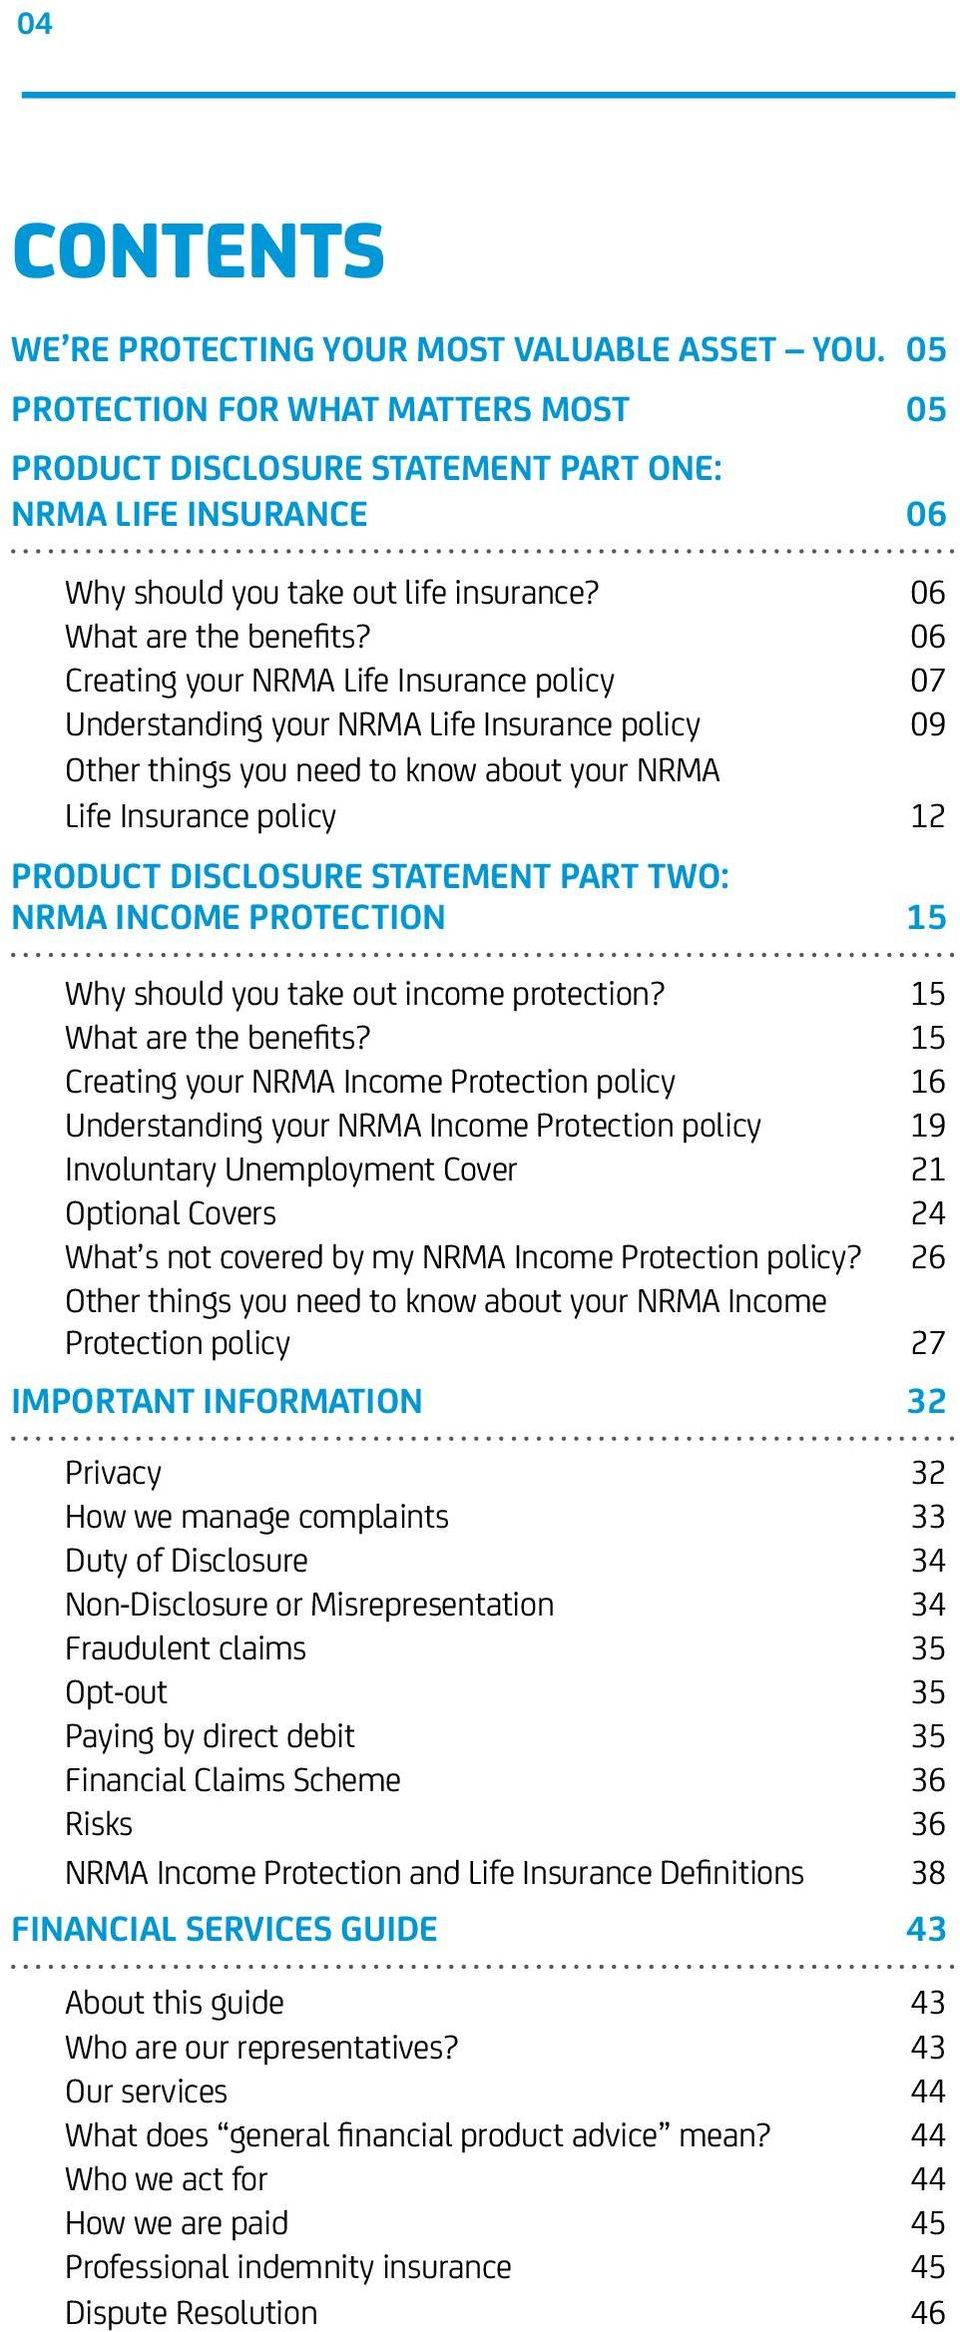 06 Creating your NRMA Life Insurance policy 07 Understanding your NRMA Life Insurance policy 09 Other things you need to know about your NRMA Life Insurance policy 12 PRODUCT DISCLOSURE STATEMENT